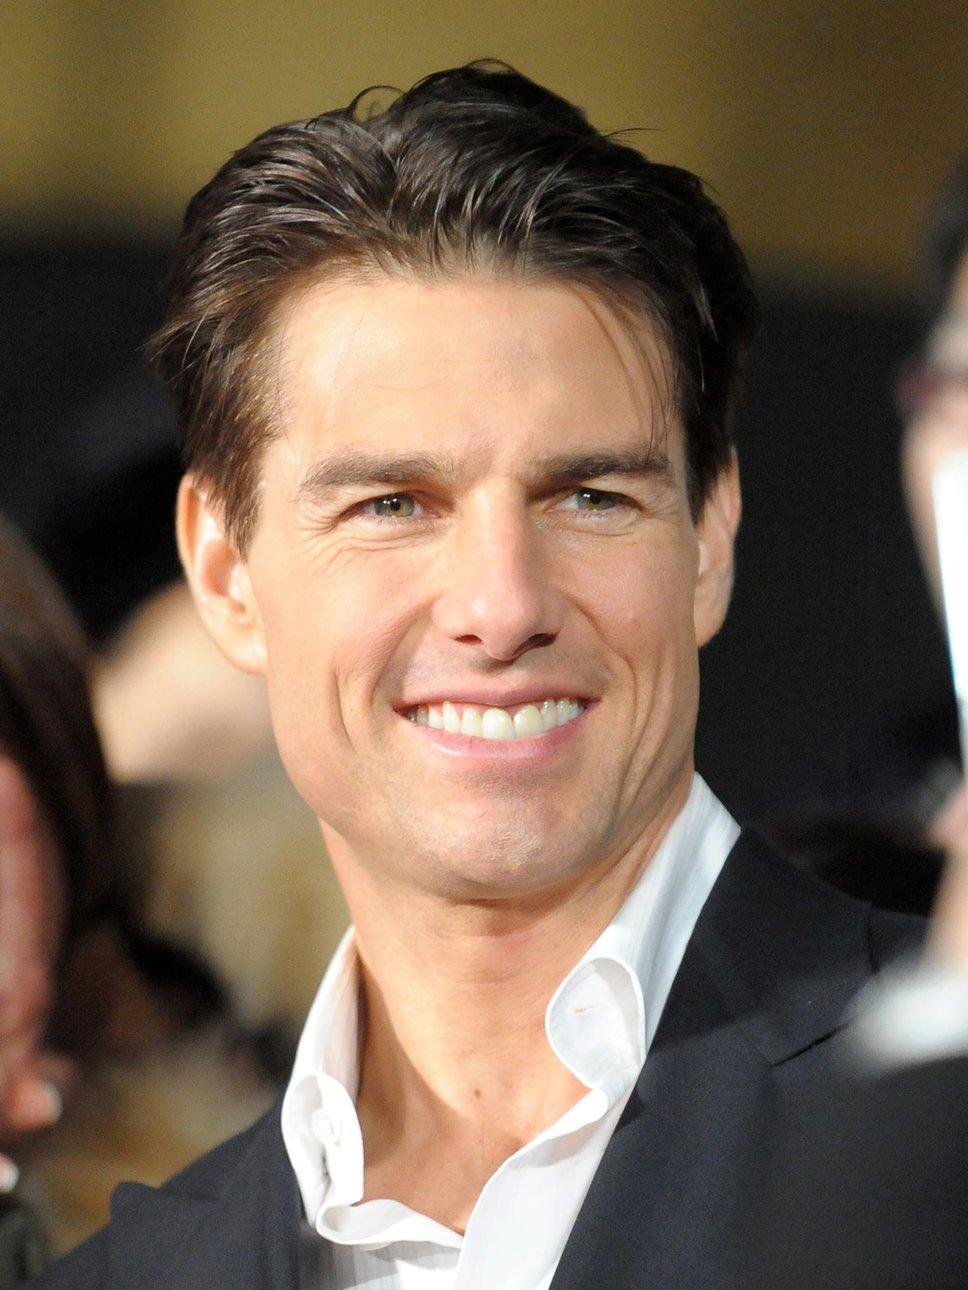 http://healthyceleb.com/wp-content/uploads/2012/06/tom_cruise-hollywood-star.jpg